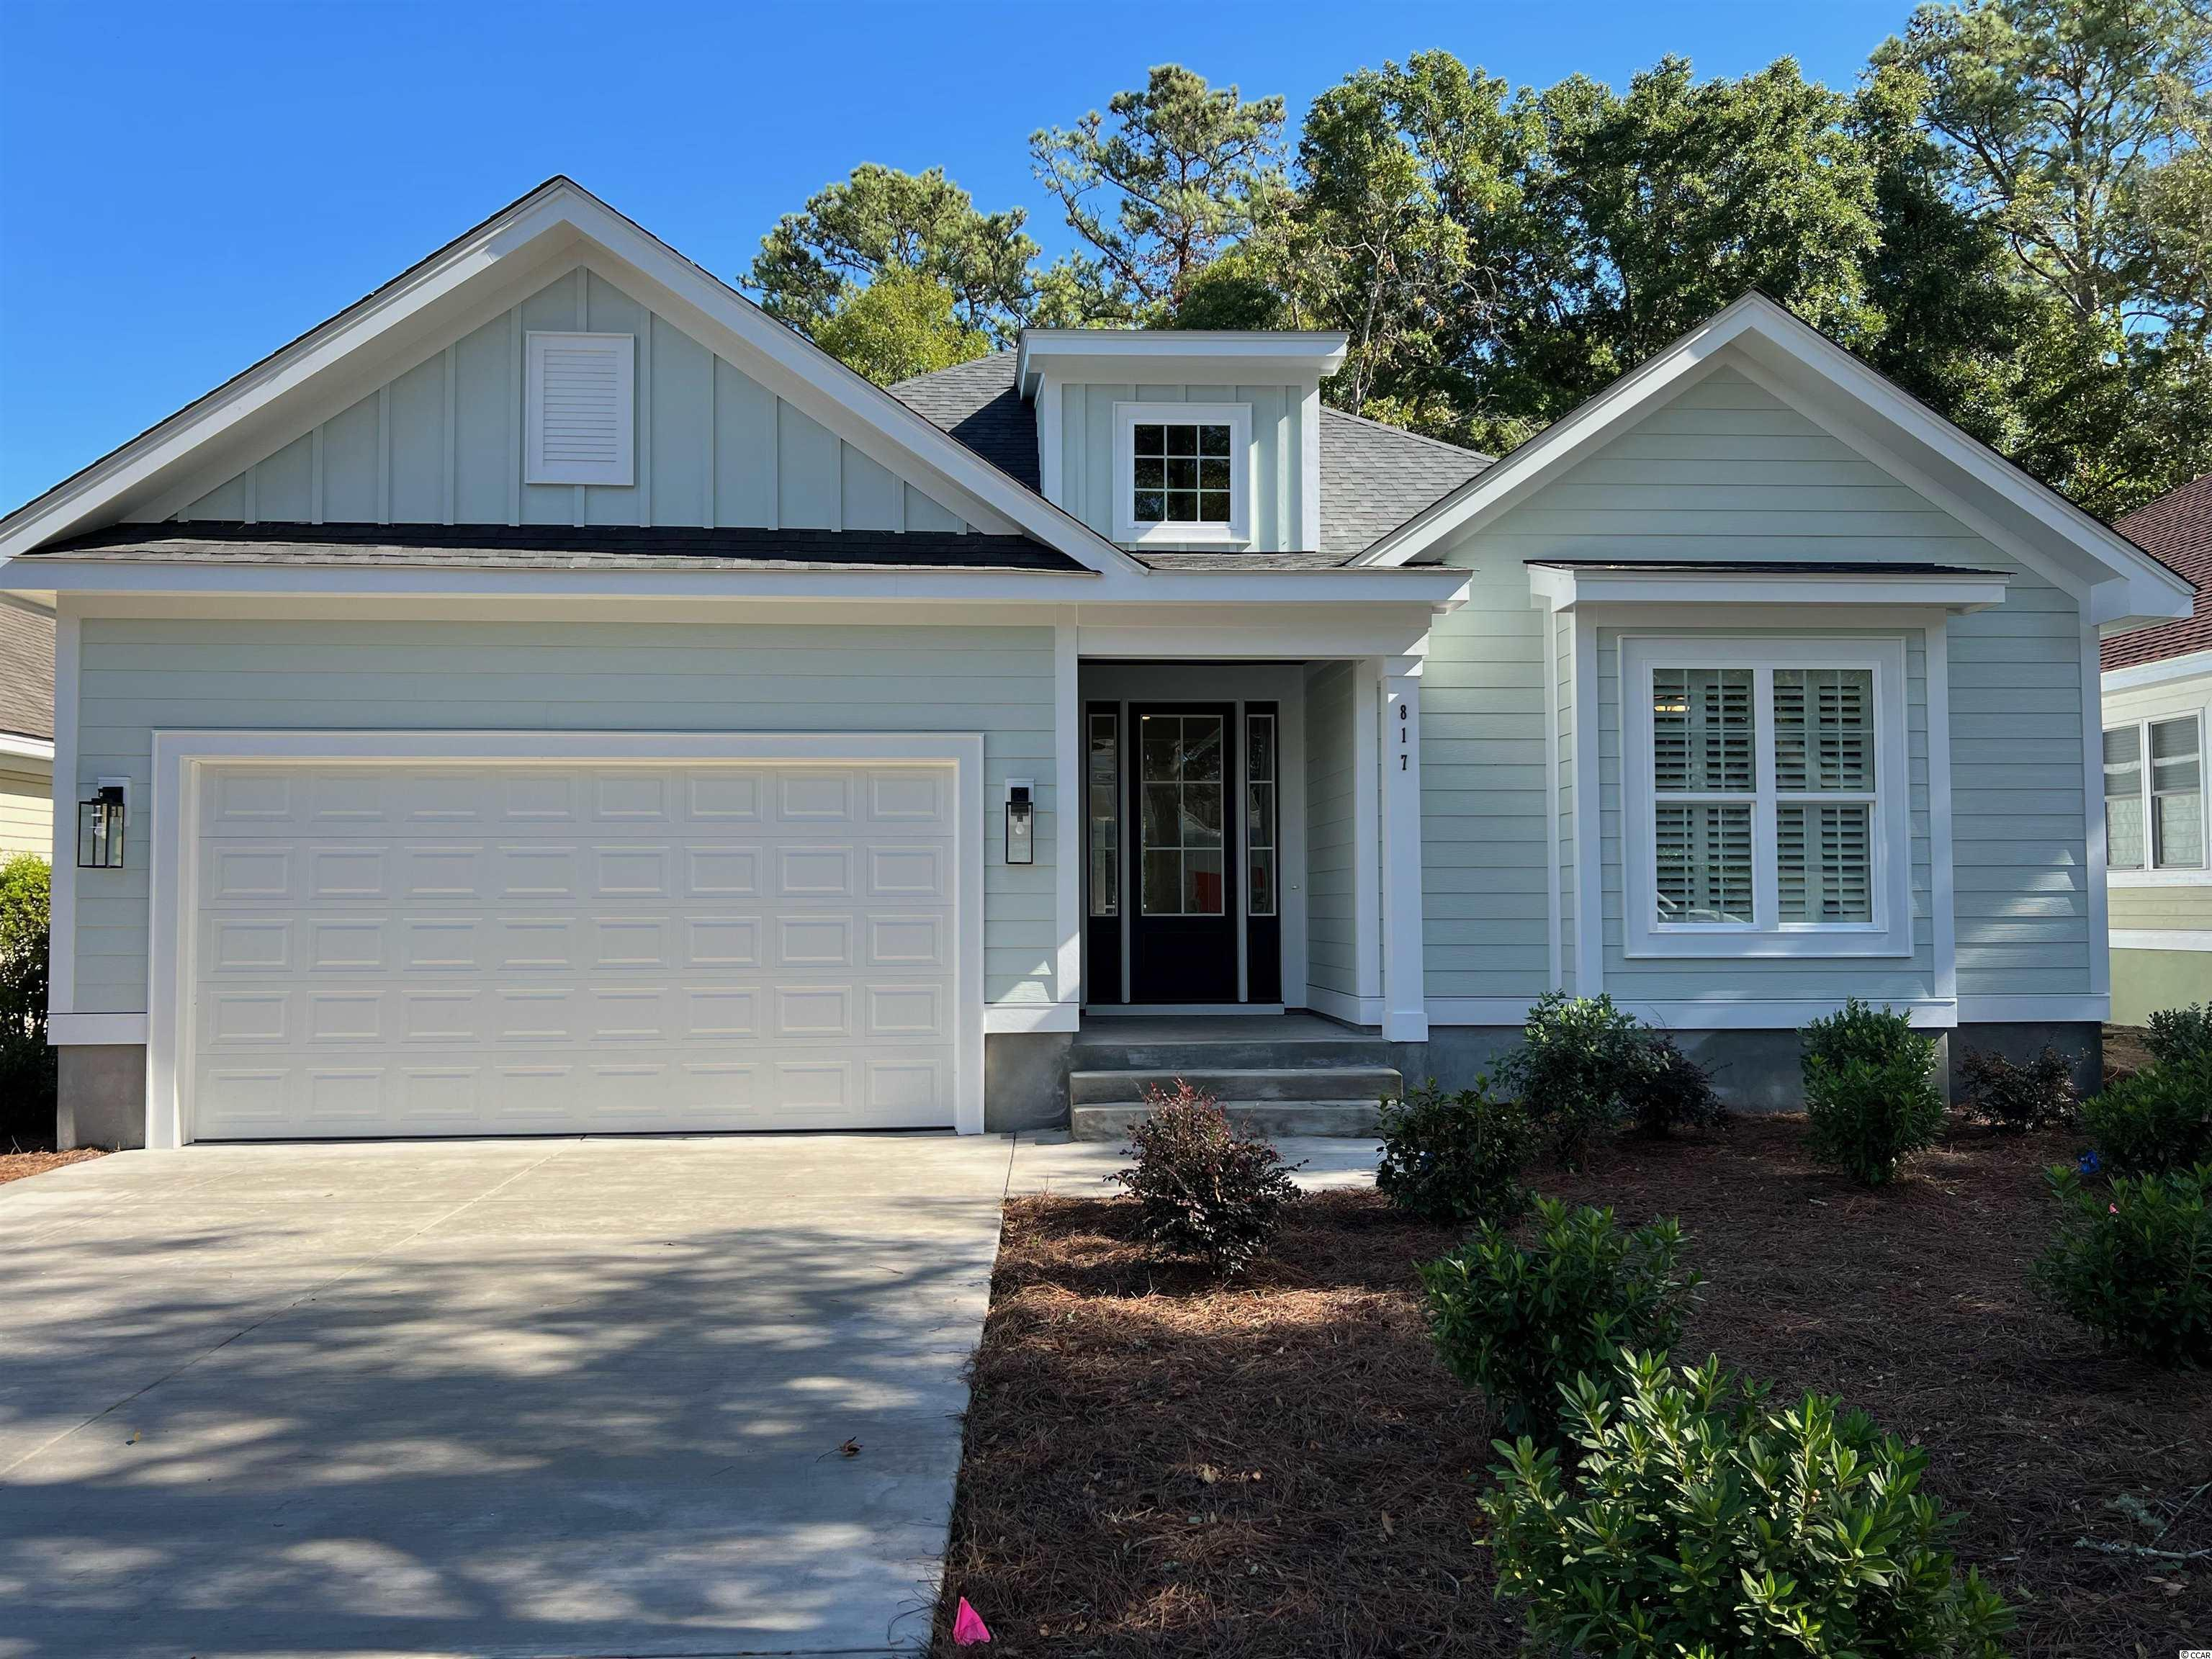 817 Morrall Dr. North Myrtle Beach, SC 29582